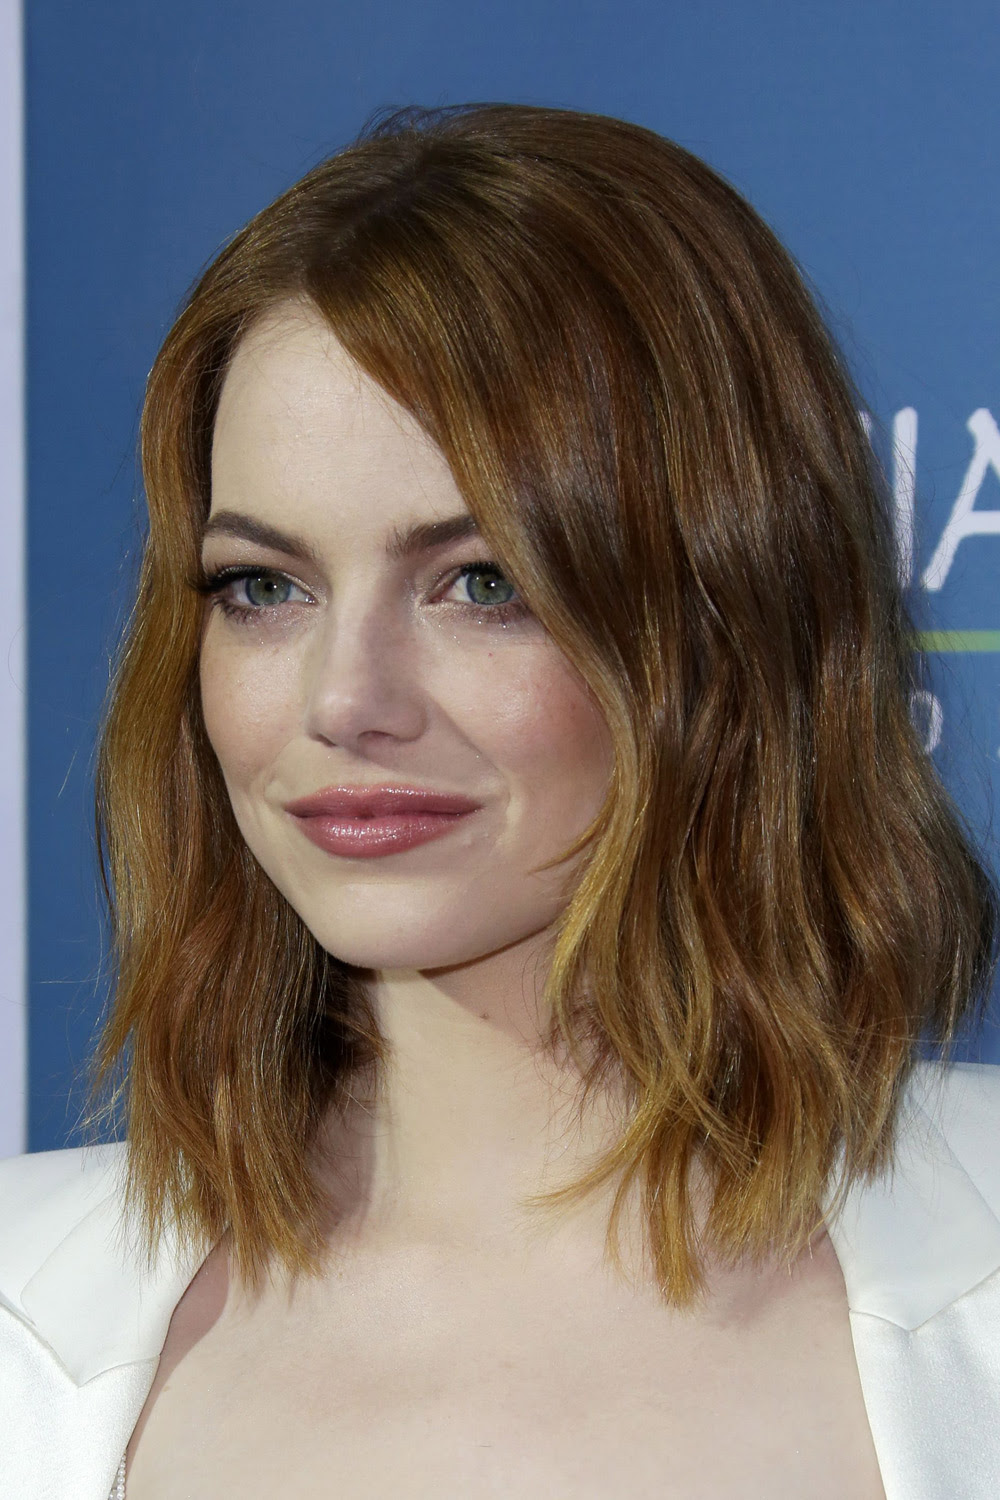 Rachel Mcadams And Emma Stone Remind Us Why Bob Hairstyles Are So